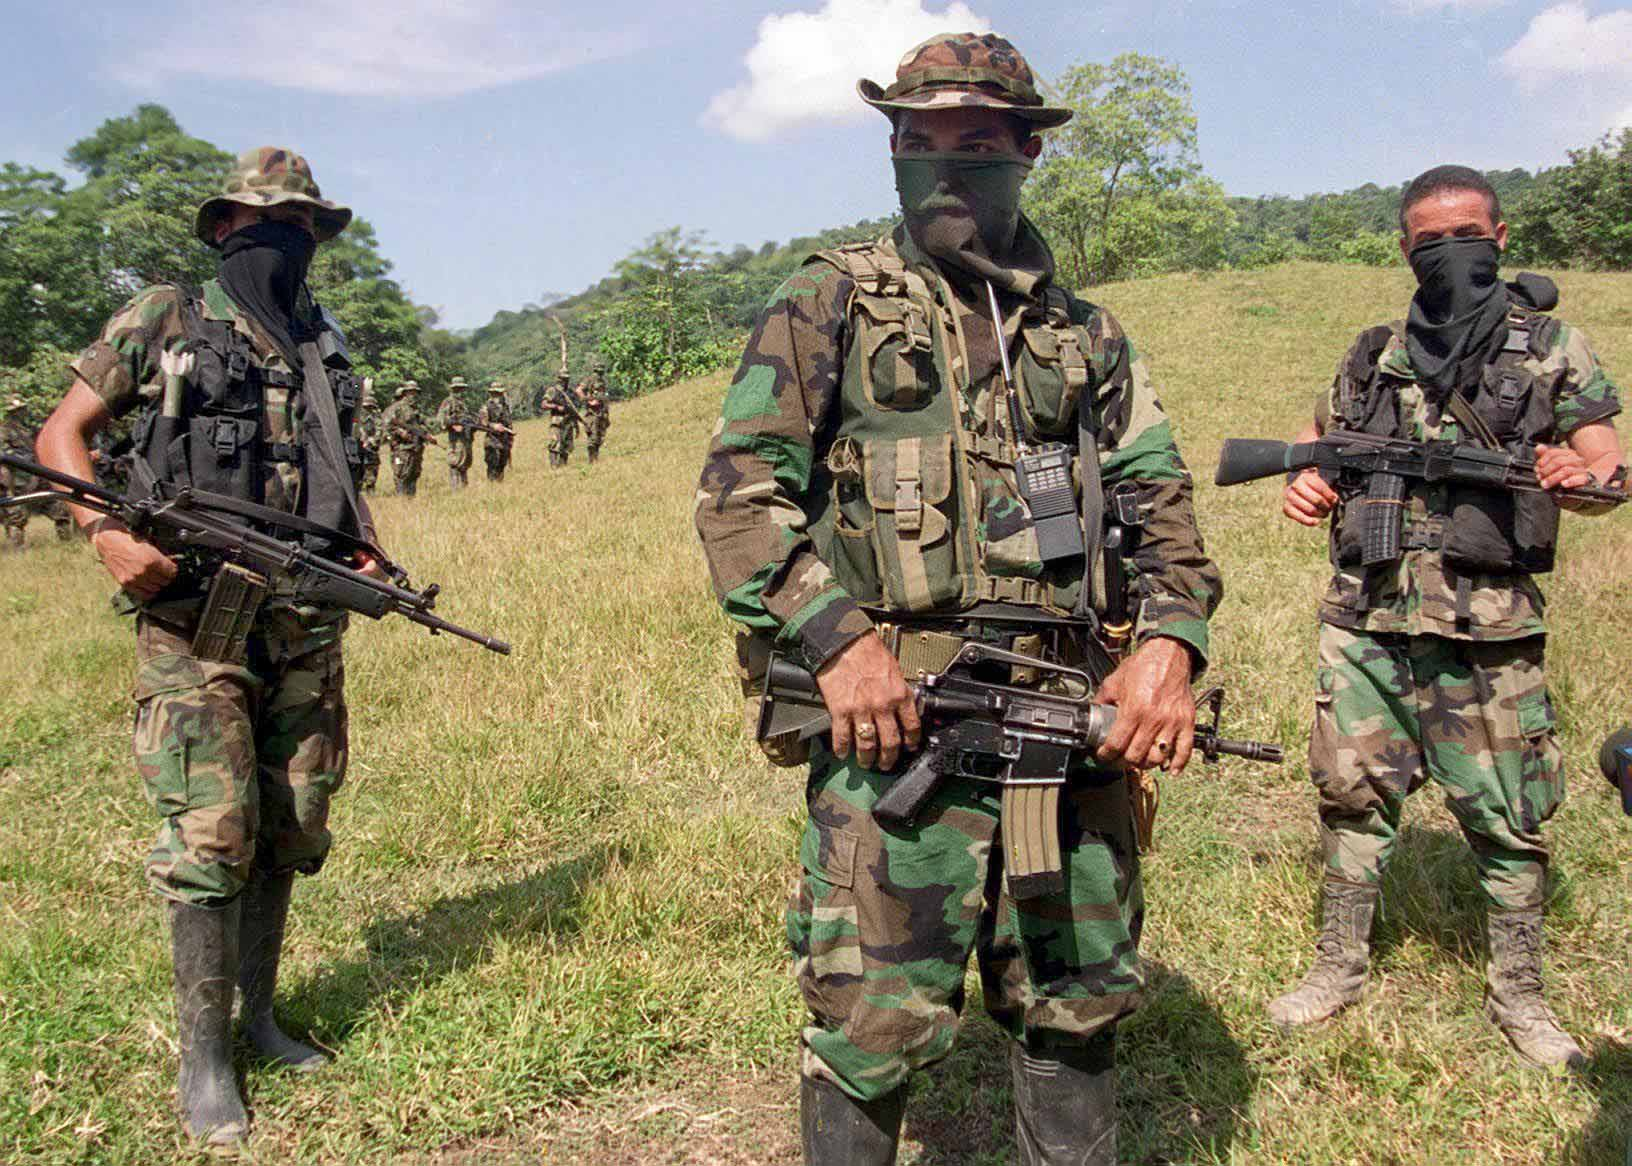 CATATUMBO, COLOMBIA - JANUARY 29:  Paramilitary leader of the Colombian United Self-Defense Forces (AUC) commandant Mauricio (C) trains his troops 29 January, 2000, in the mountains near Catatumbo, northwest of Bogota. Clashes between the AUC and guerrilla forces have been reported in the Catatumbo region, considered one of the major coca producing areas of Colombia.      Foto tomada el 29 de Enero de 2000 del comandate Mauricio (C), jefe militar del grupo paramilitar Autodefensas Unidas de Colombia, AUC, que operan en las montanas del Catatumbo, al noroeste de Bogota. Fuertes combates se han registrado las ultimas semanas entre las AUC y guerrilleros de las FARC y el ELN, por el control de la zona del Catatumbo, considerada una de las principales regiones productora de coca que sirve a financiar a las diferentes facciones que participan en el conflicto colombiano.  (Photo credit should read CARLOS GARCIA/AFP/Getty Images)